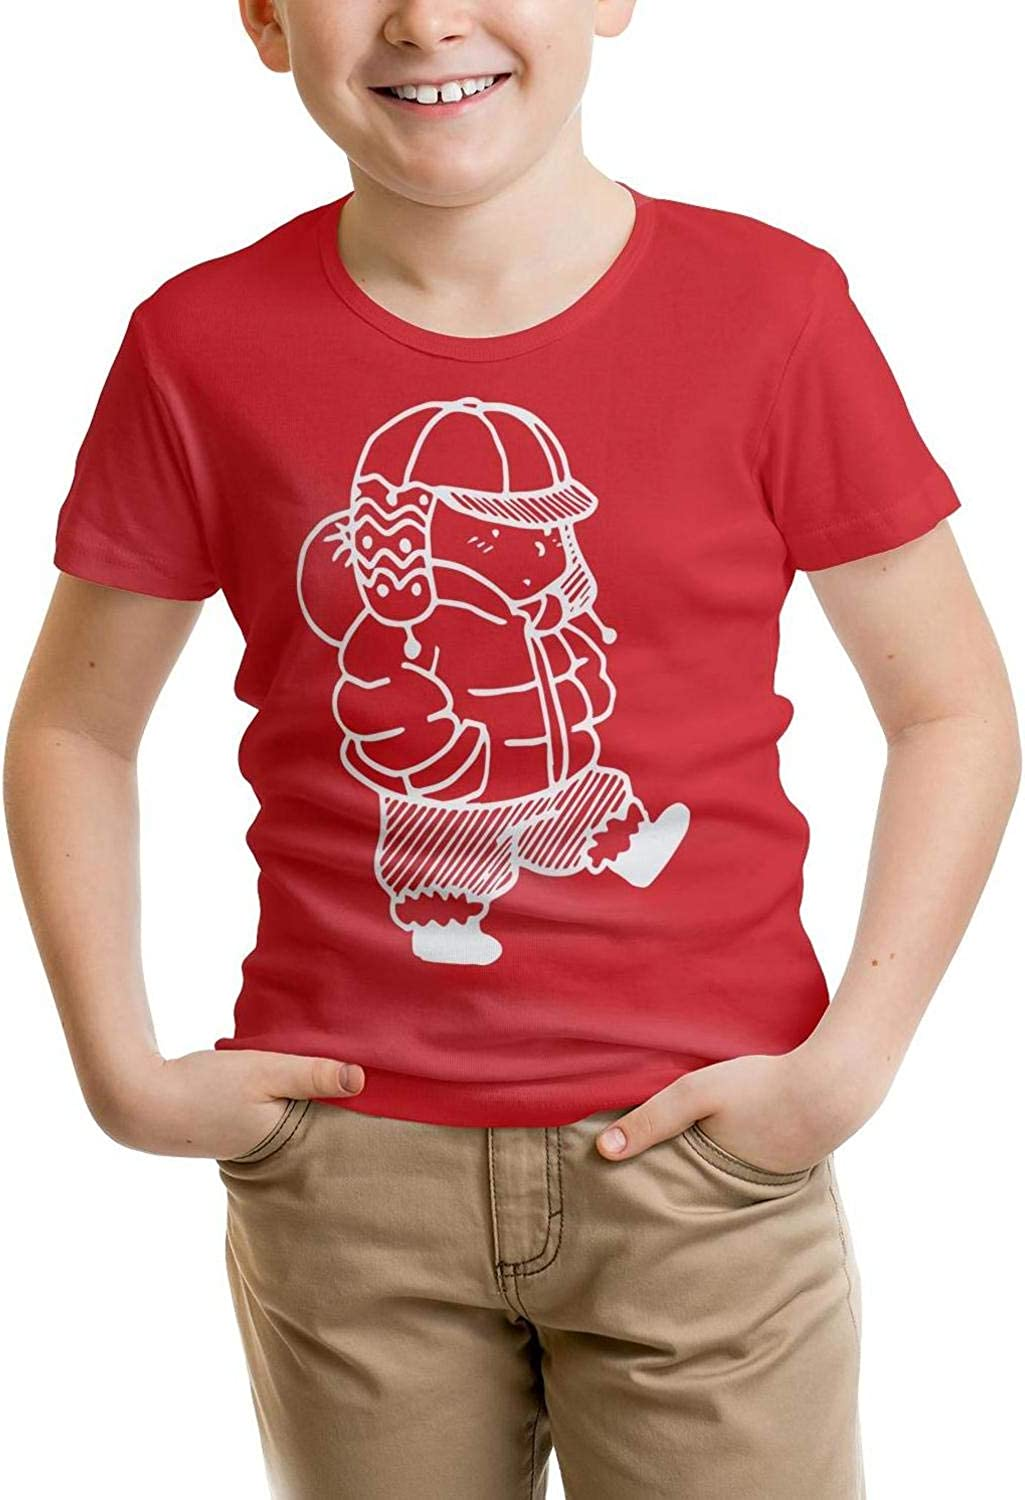 sclDO Concise Pattern Shirt All Cotton Solid for Girls t-Shirt Walking The Dog